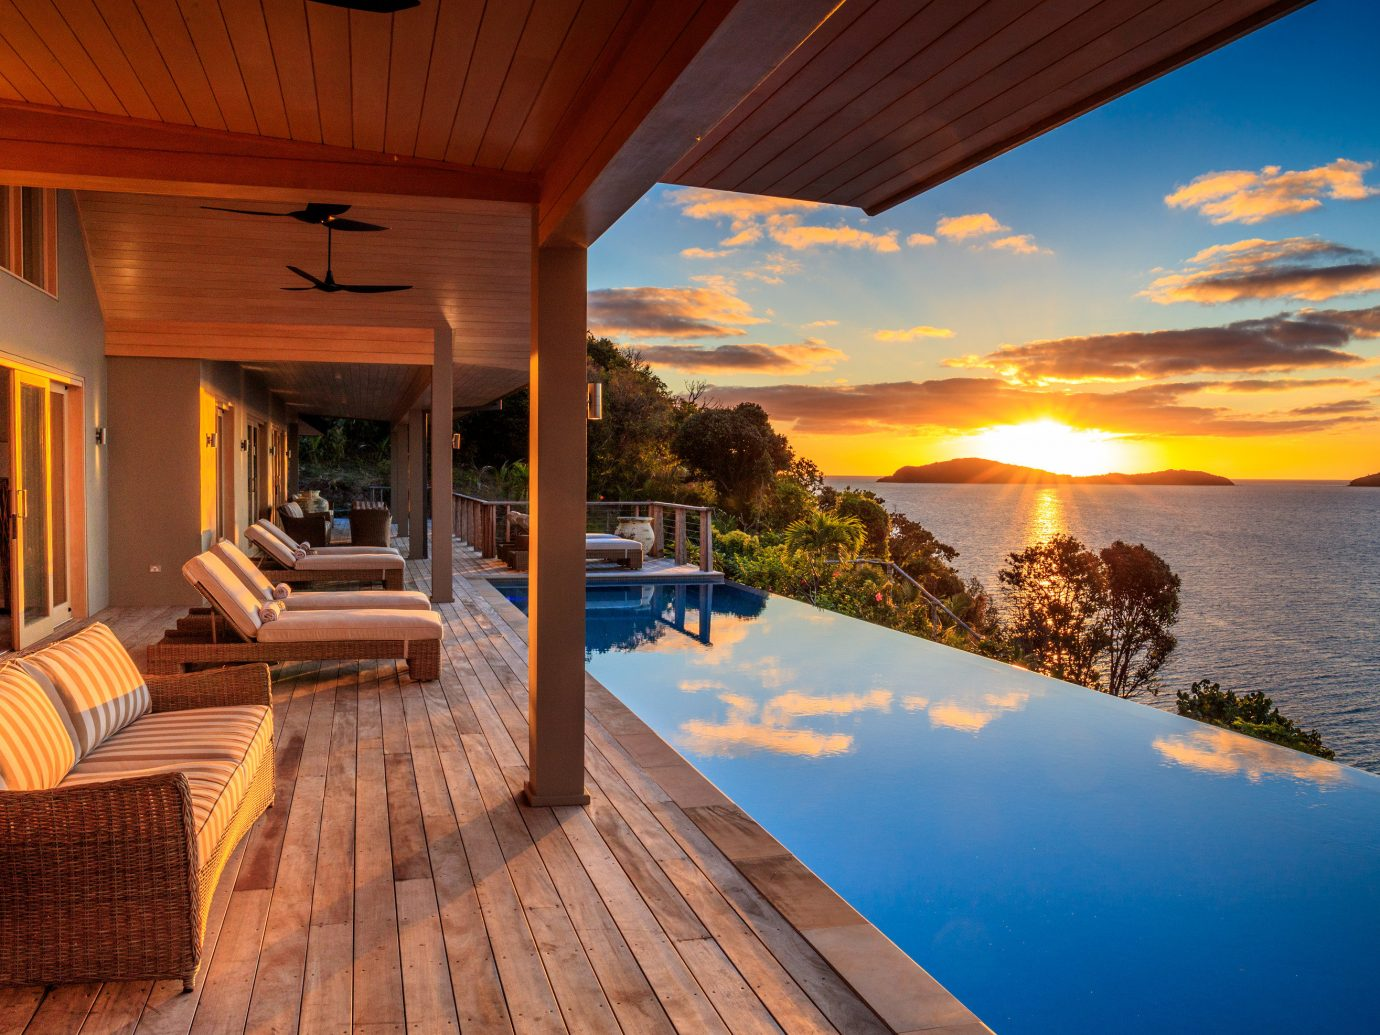 Boutique Hotels Hotels Luxury Travel property home building sky real estate estate Architecture Resort Villa house swimming pool lighting evening vacation wood apartment sunlight Sea hotel window porch interior design penthouse apartment leisure amenity Balcony hacienda Deck